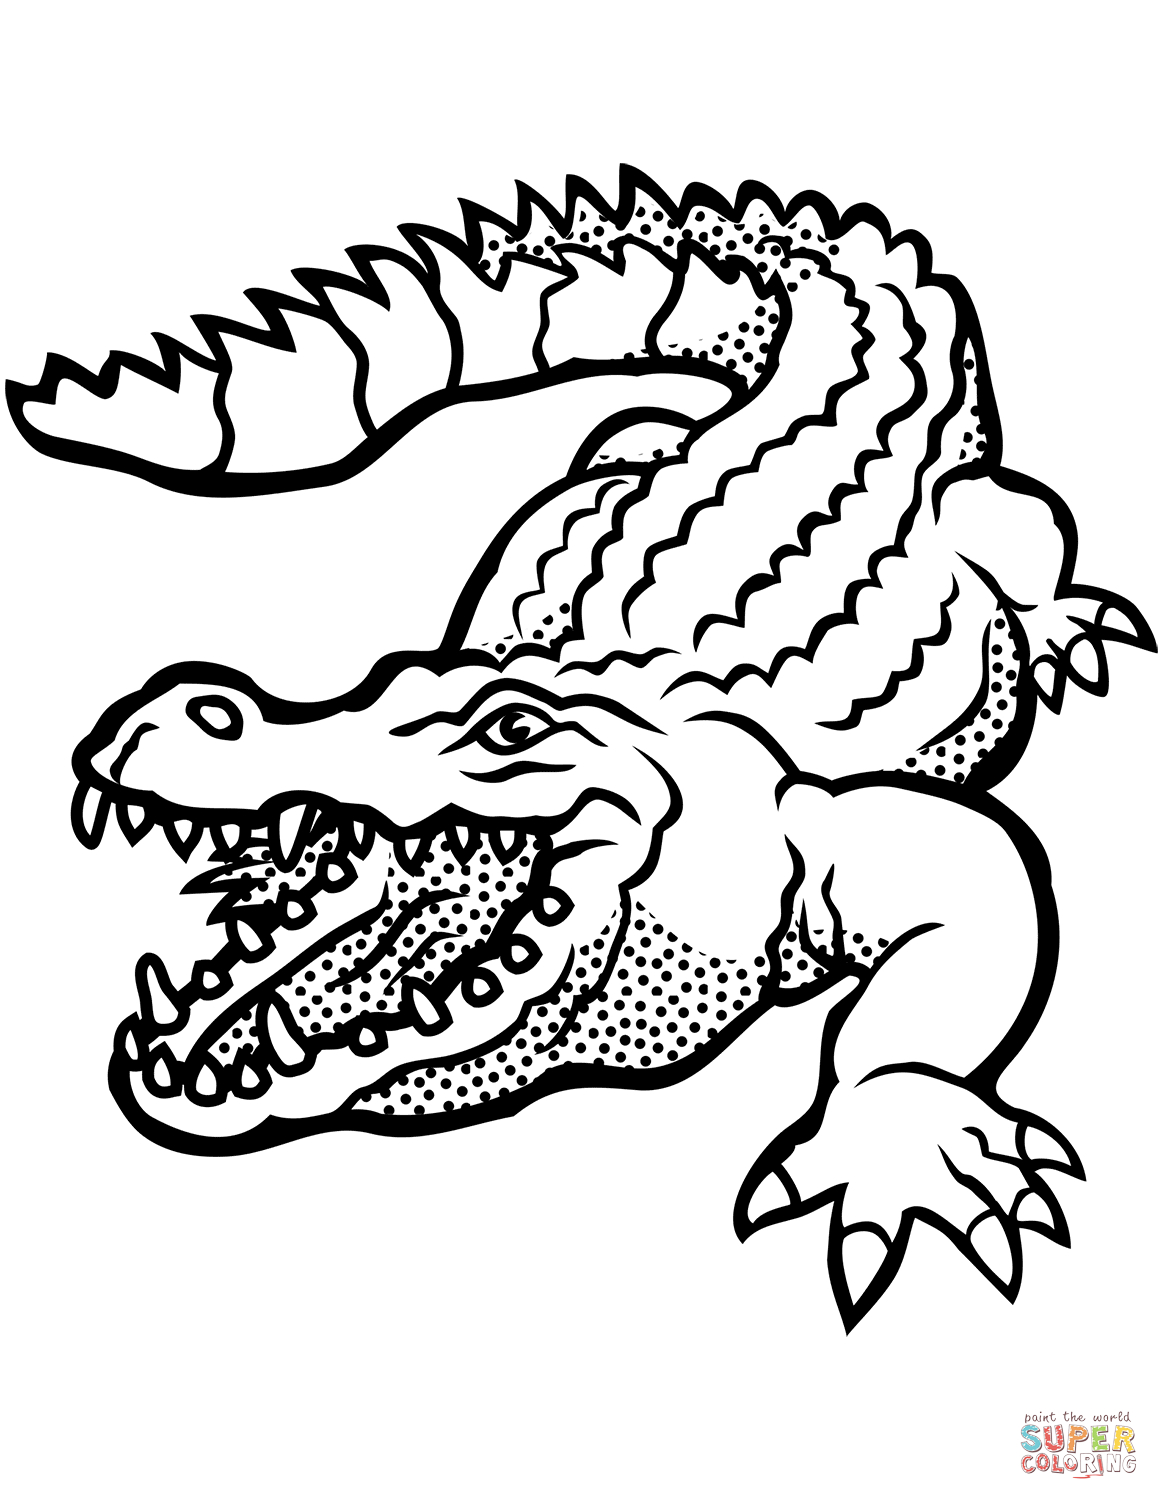 Coloring Page Alligator Crocodile With Open Mouth Coloring Page Free Printable Coloring Pages